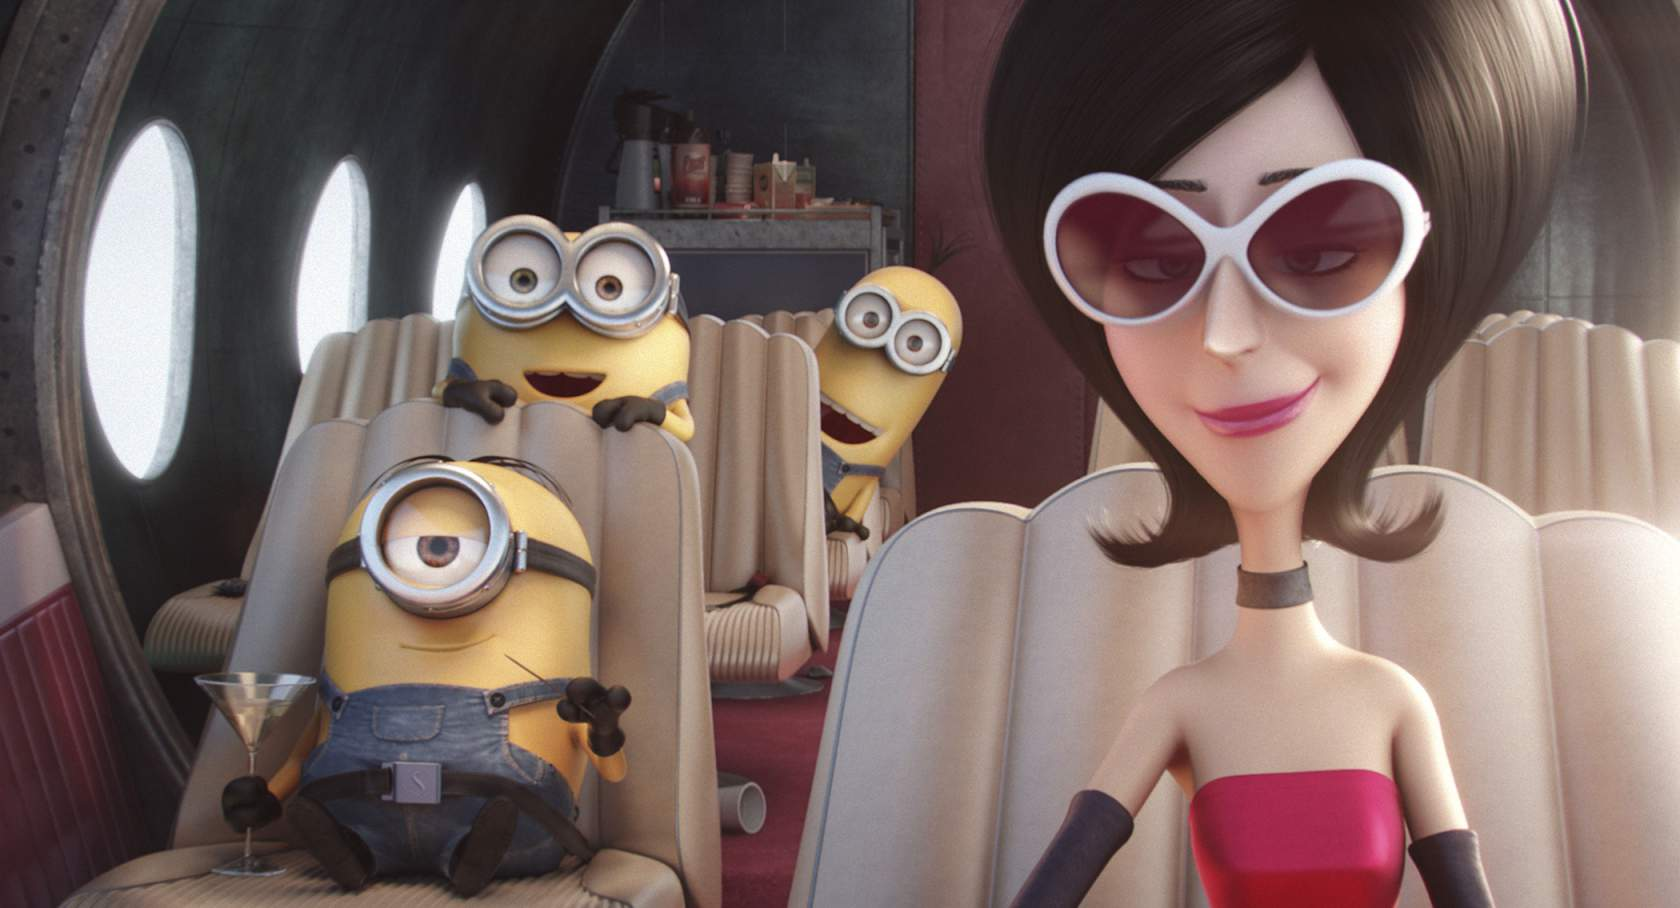 Minions Review 2/5 stars